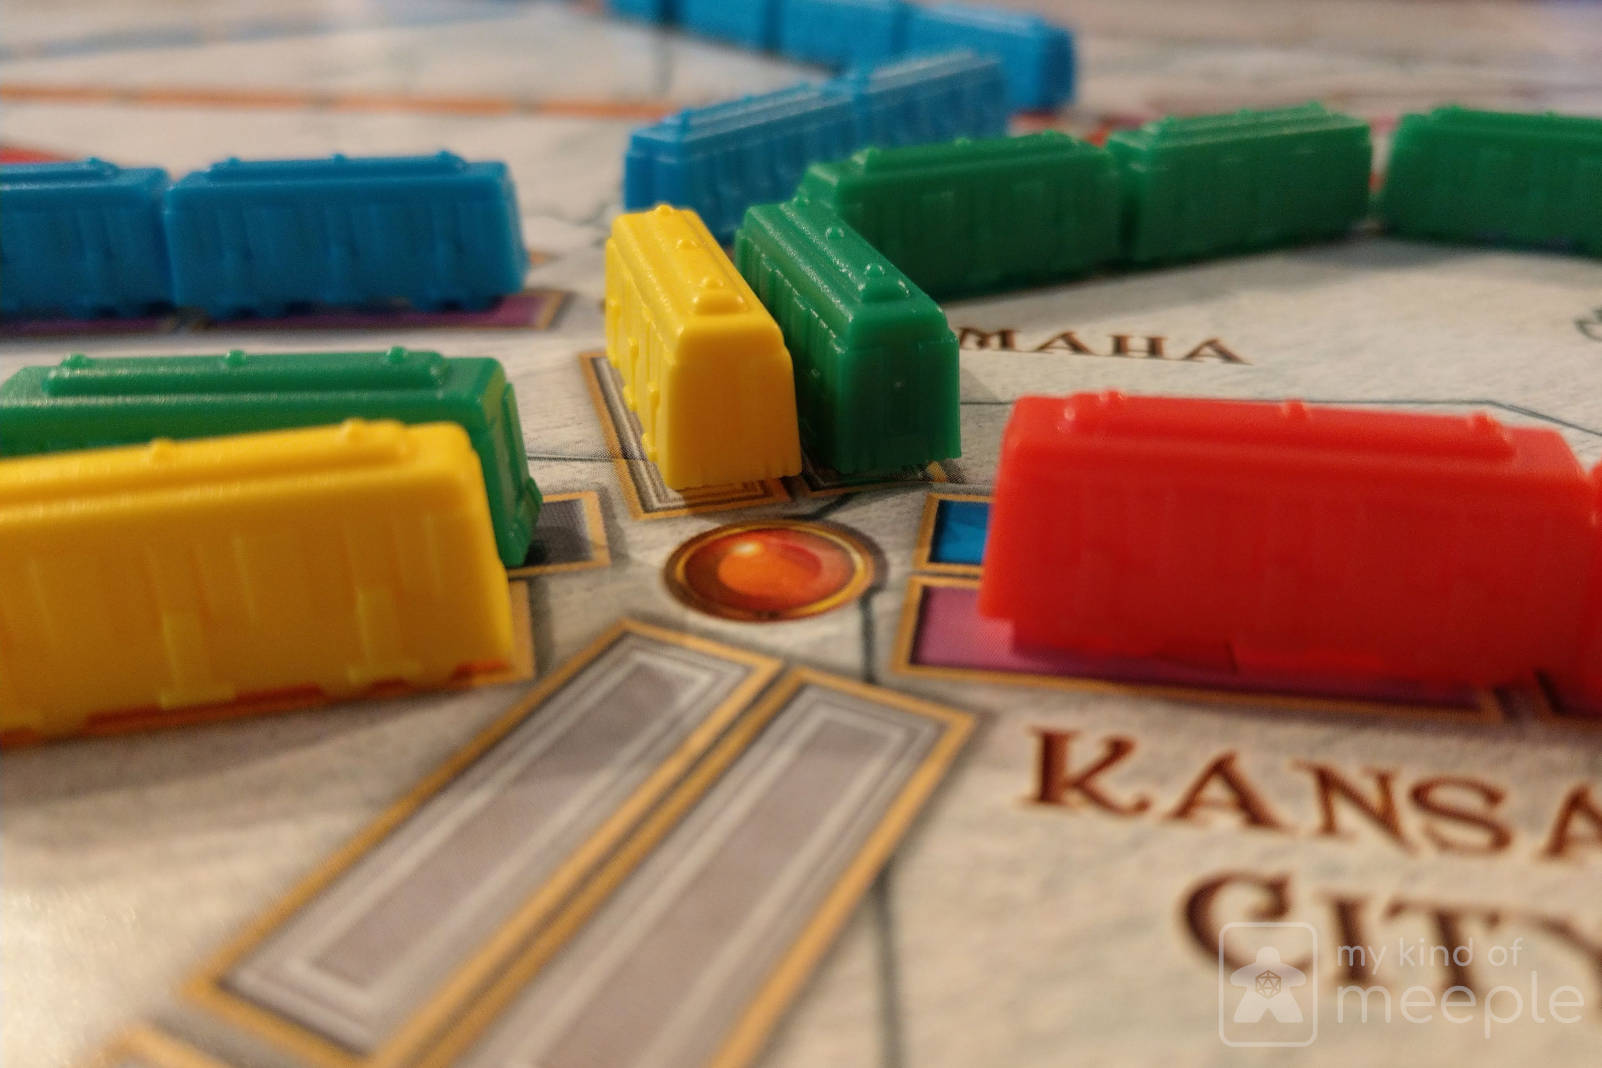 Ticket to Ride trains on board